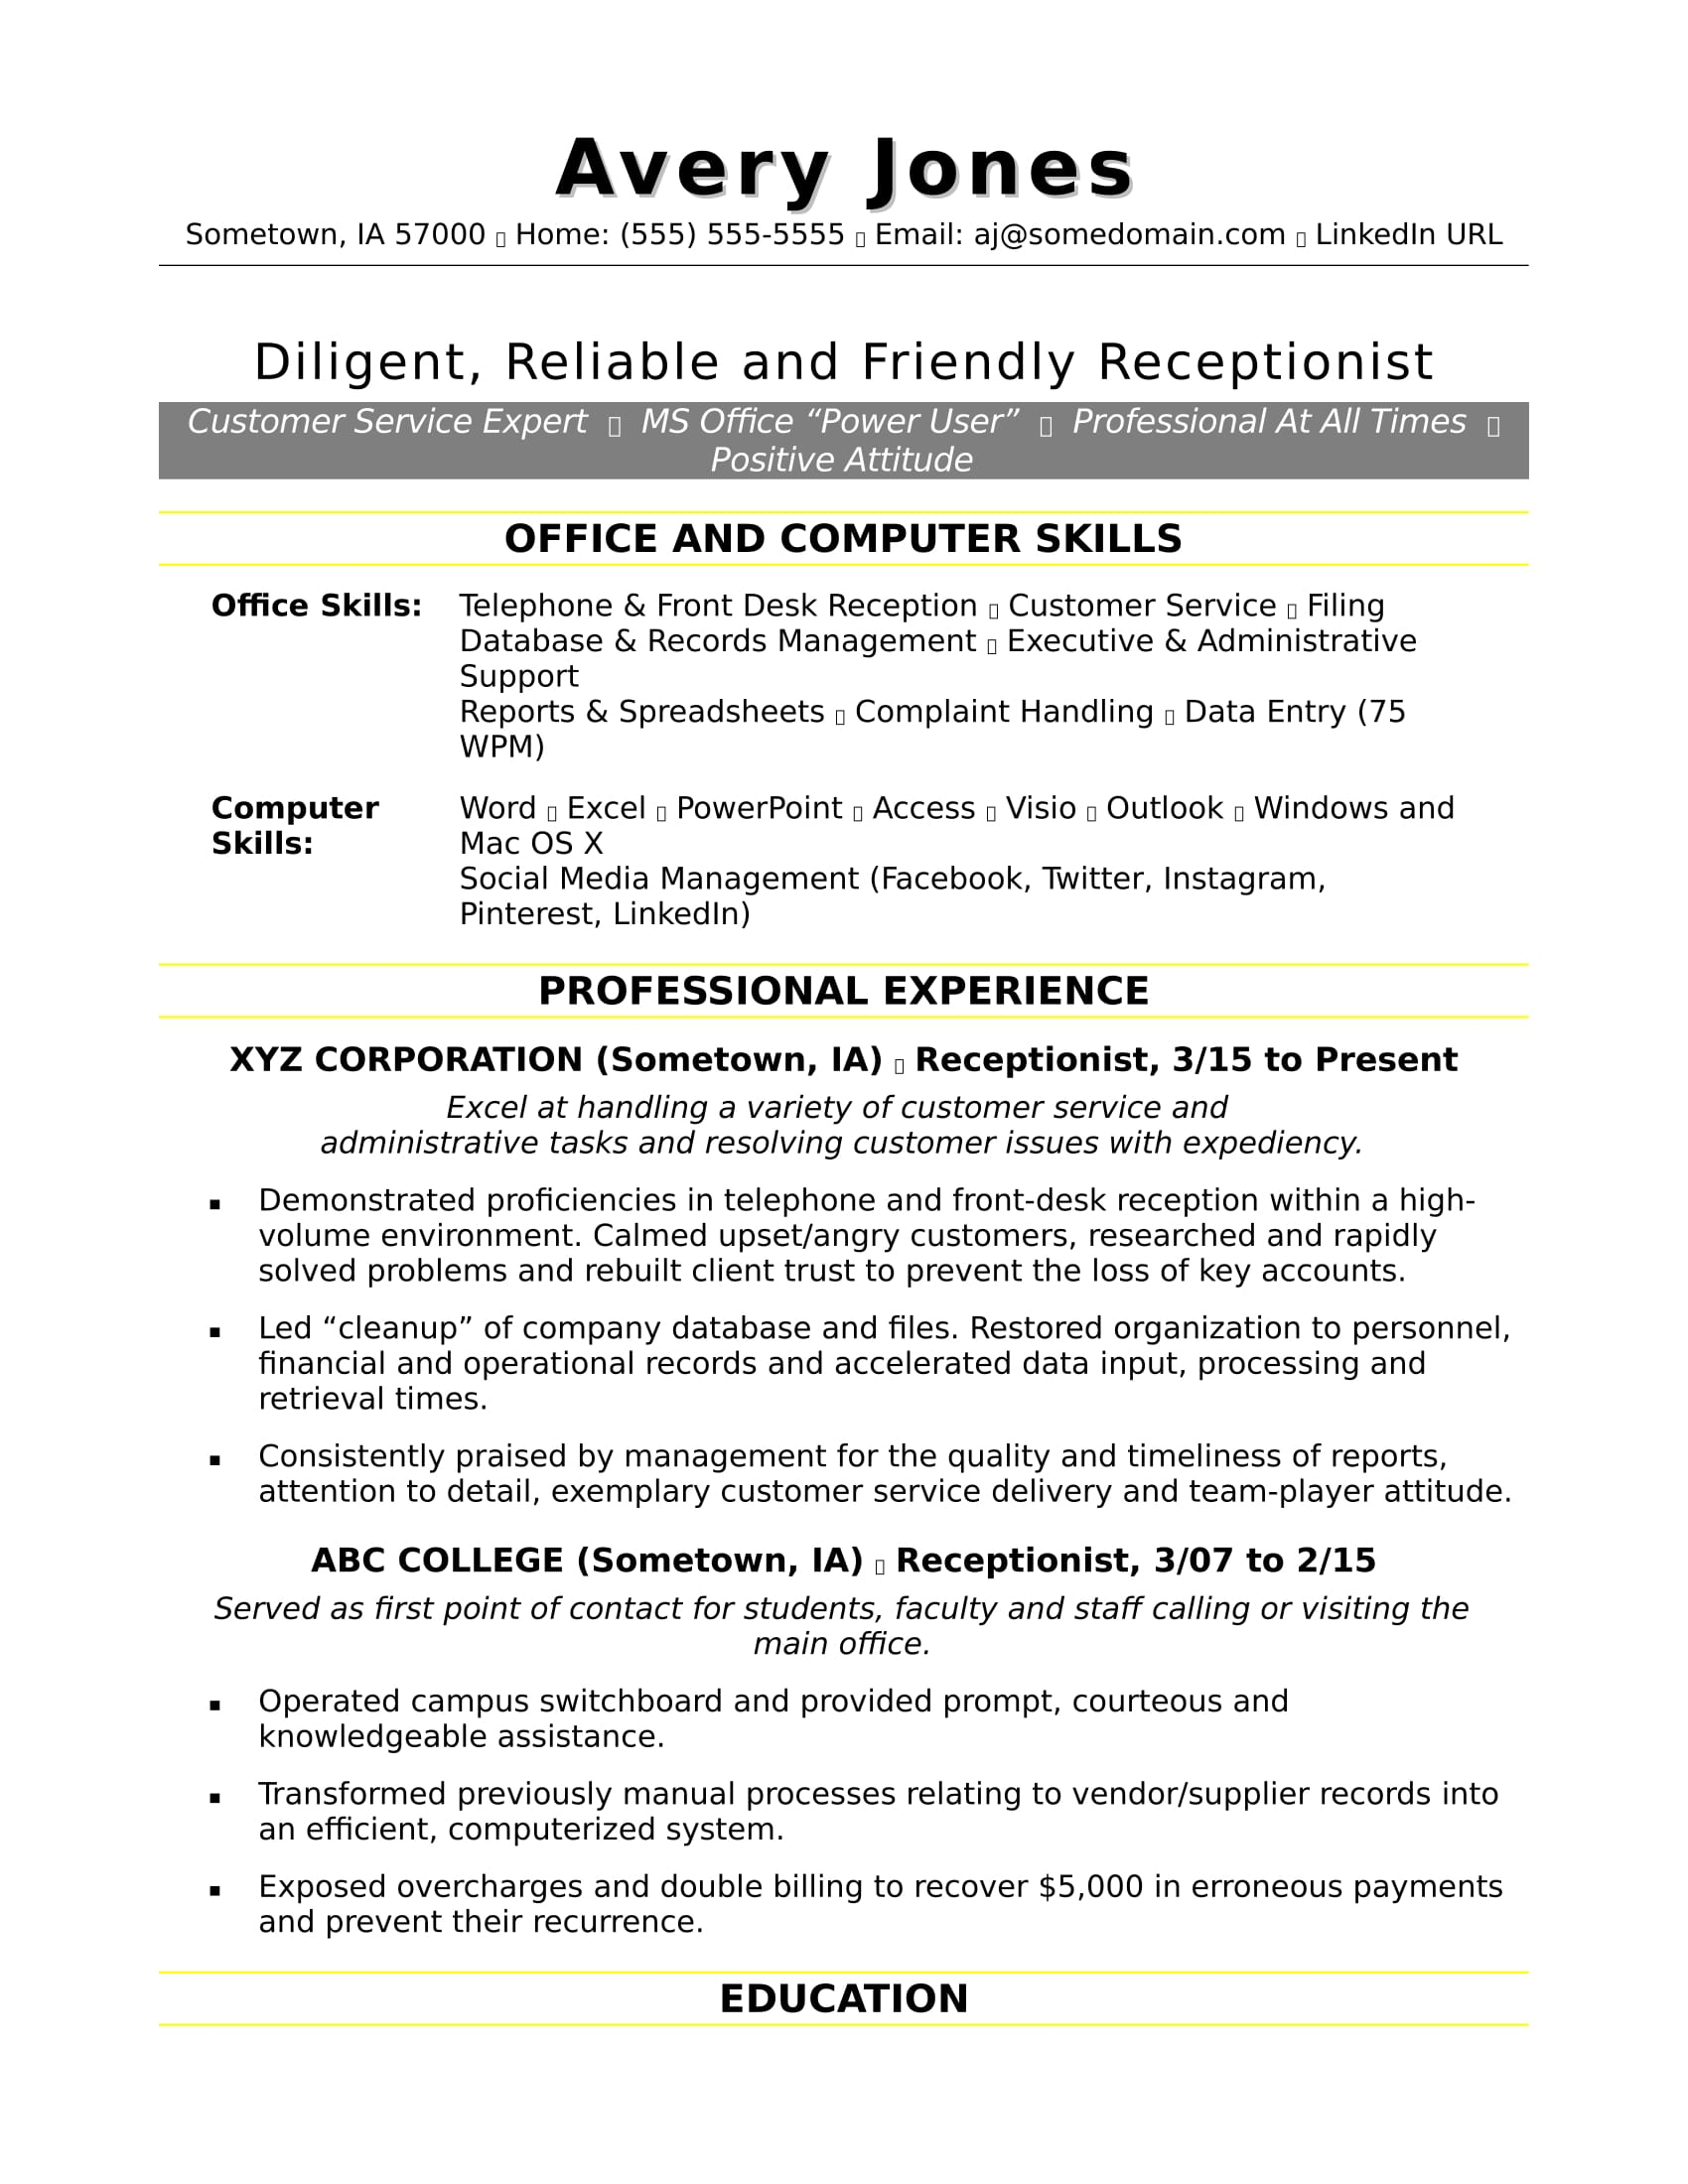 Receptionist resume sample monster sample resume for a receptionist altavistaventures Choice Image